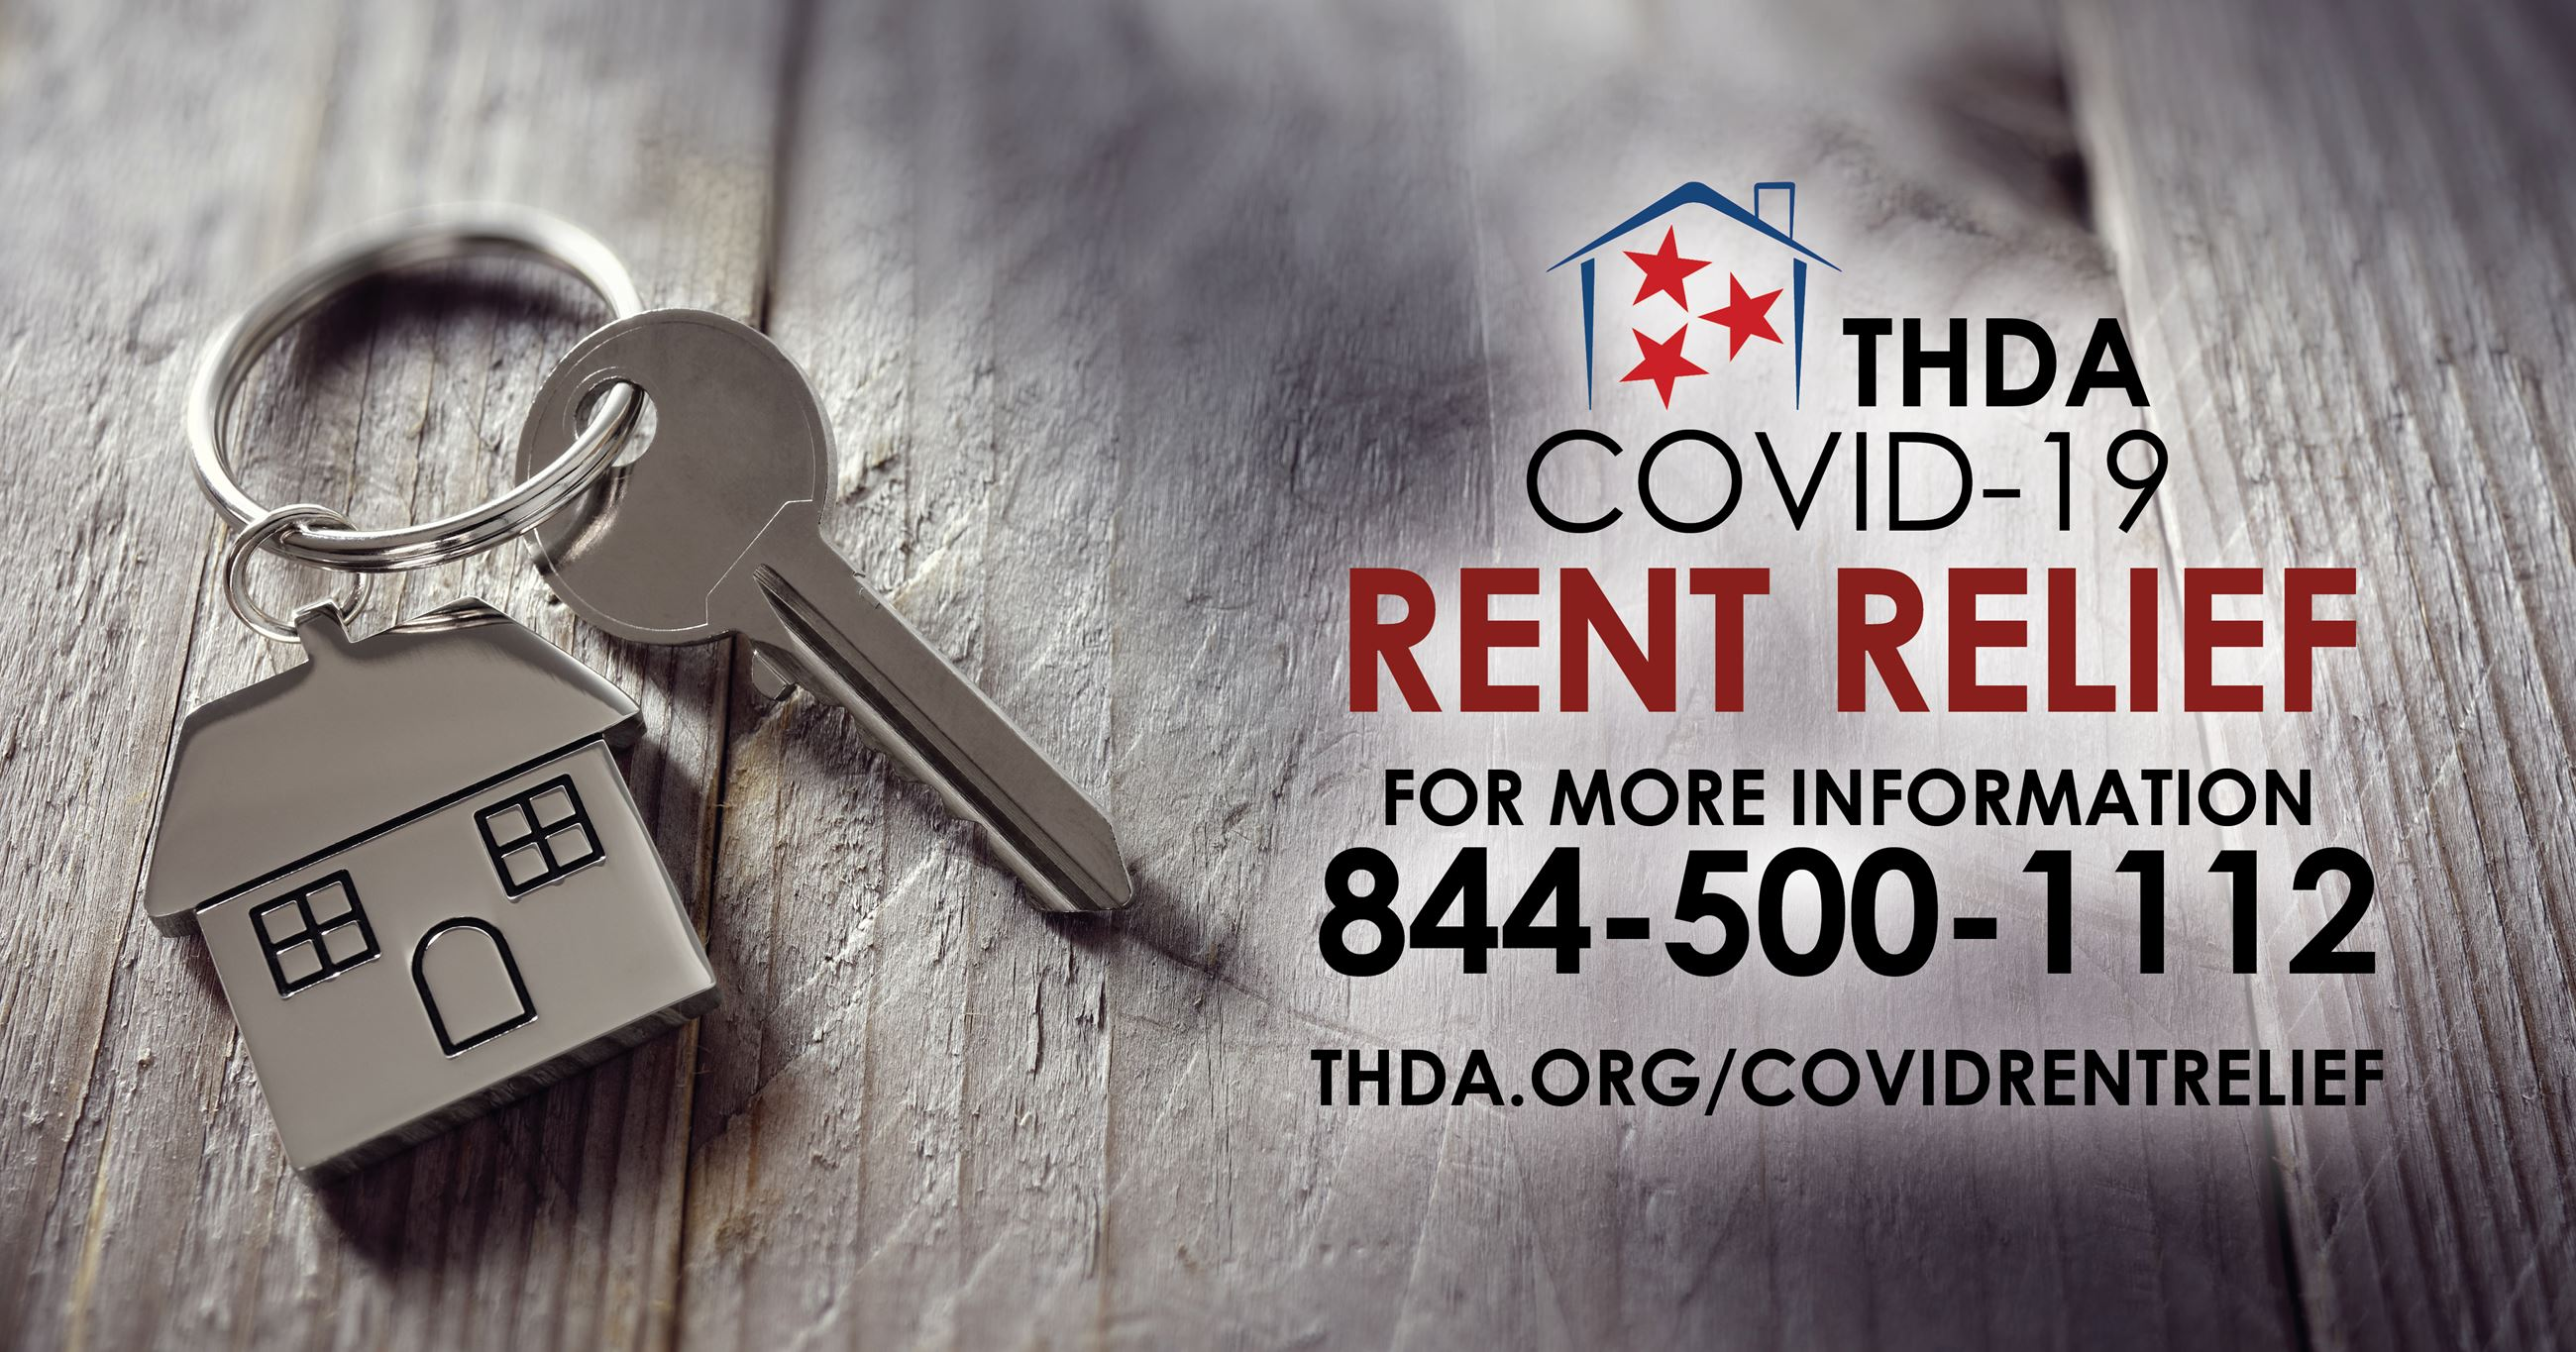 FB Covid Rent Relief - Call Center